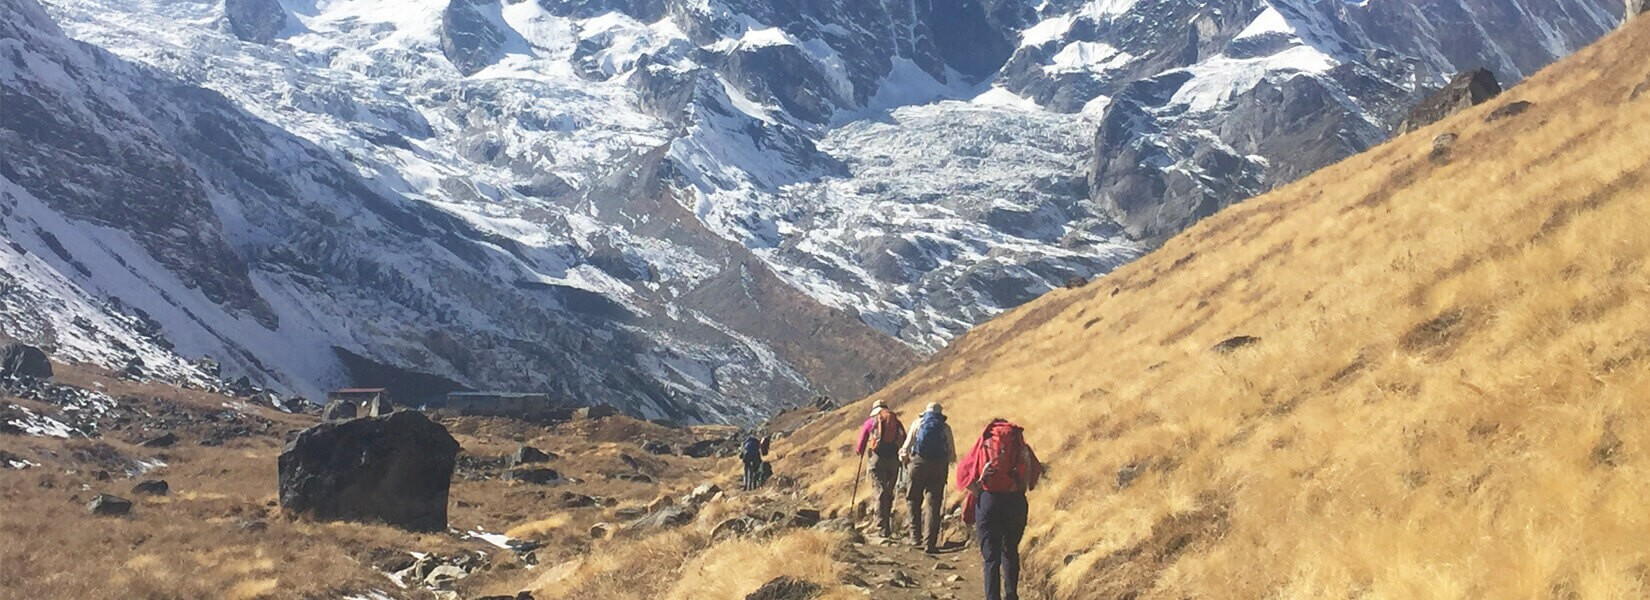 Annapurna Trekking Packages